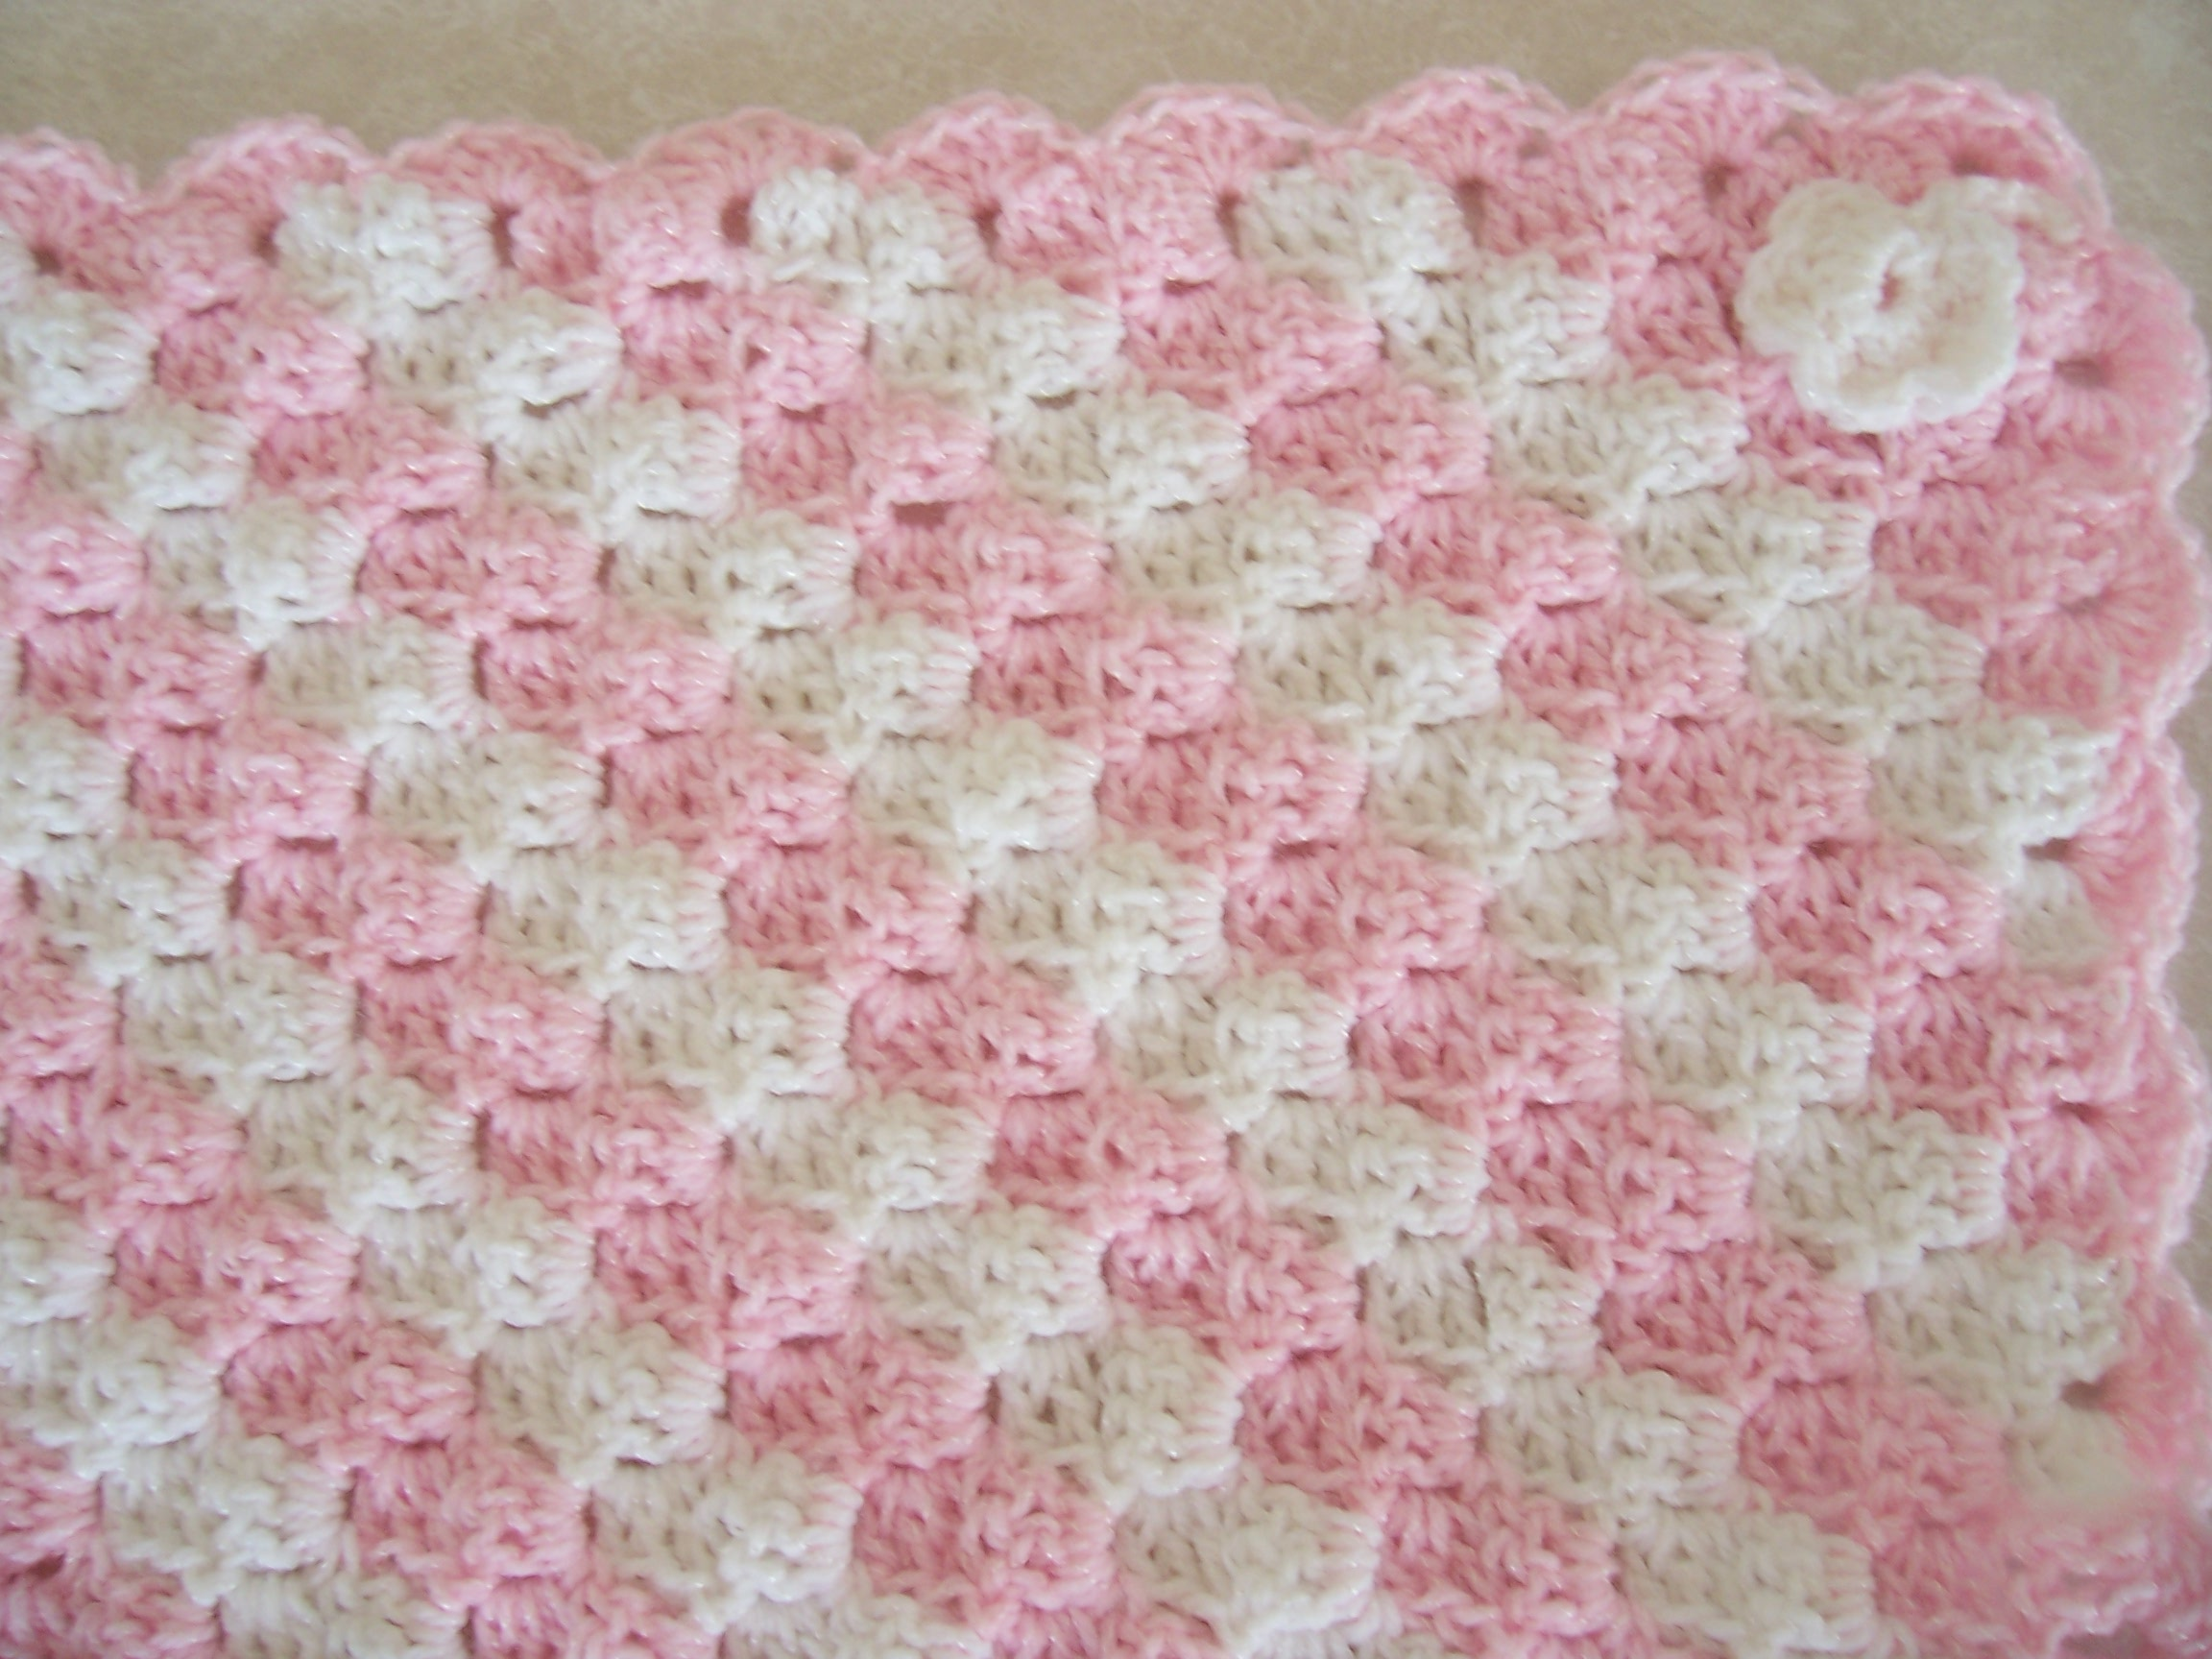 Crocheting Baby Blanket : Fluffy Clouds Baby Blanket Pattern - Crochet Baby Patterns